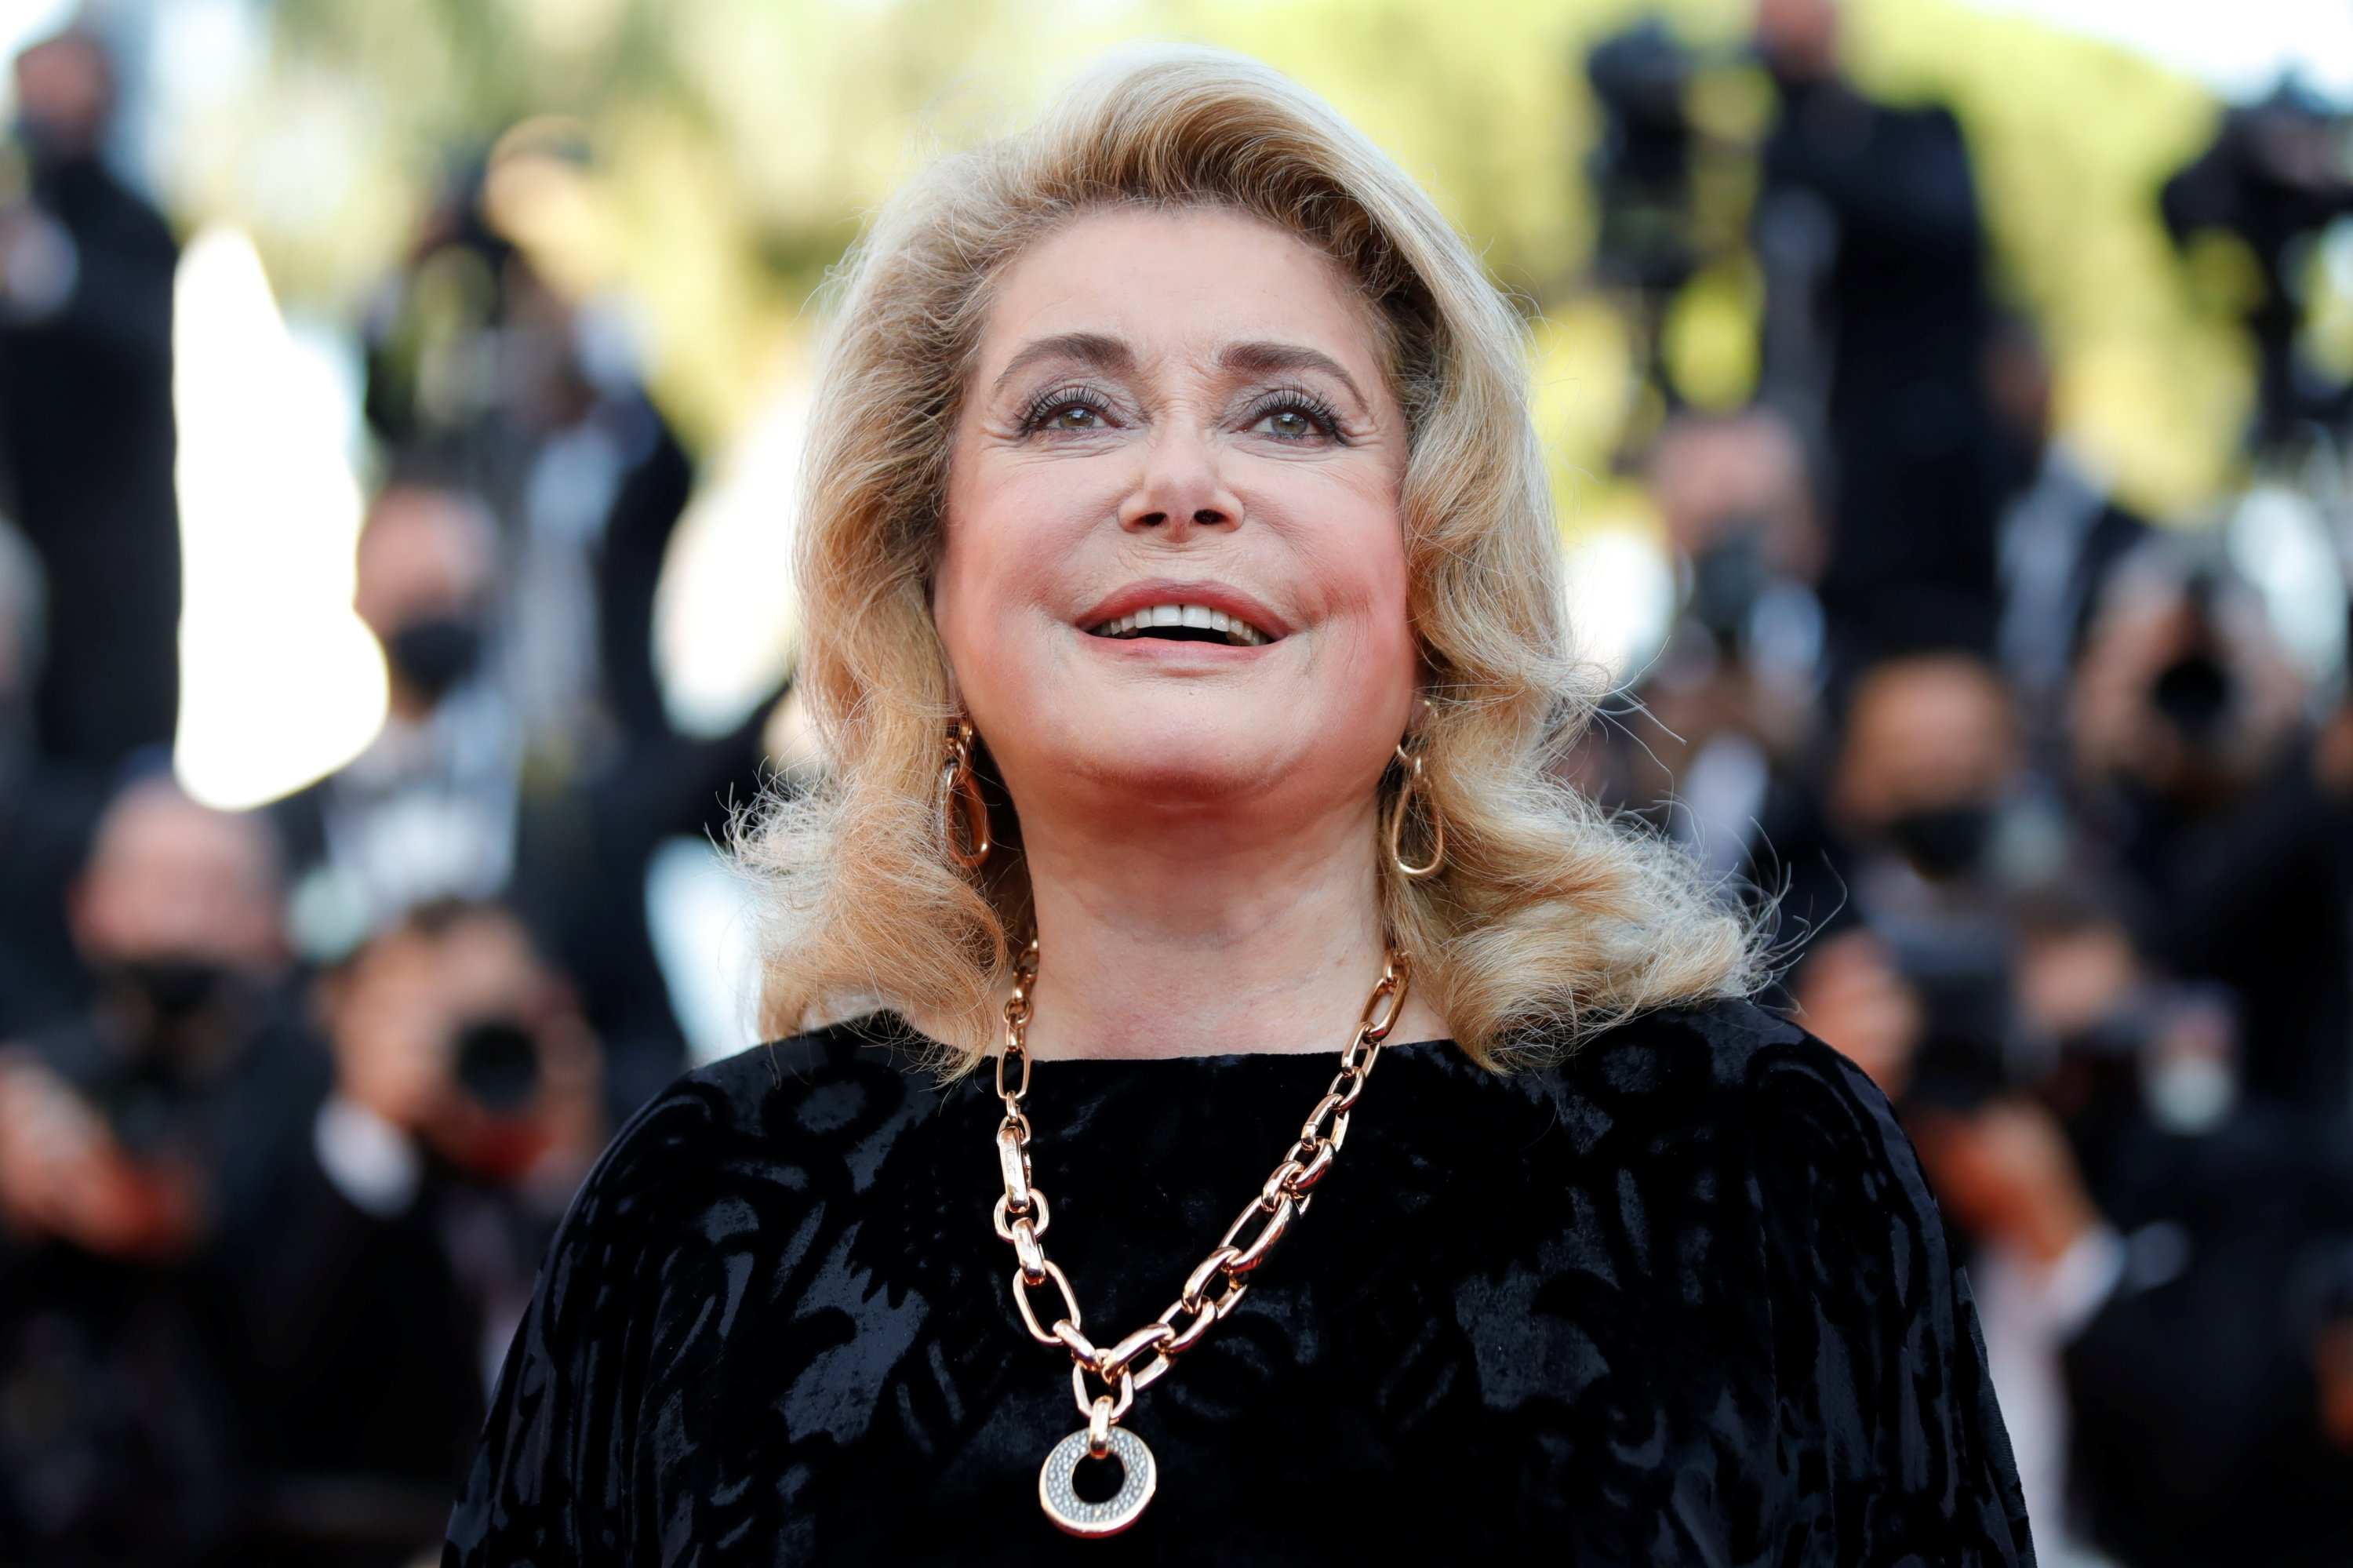 Catherine Deneuve poses during a photocall for the film 'De son vivant' (Peaceful) at the74th Cannes Film Festival inCannes, France, July 11, 2021. (Reuters Photo)